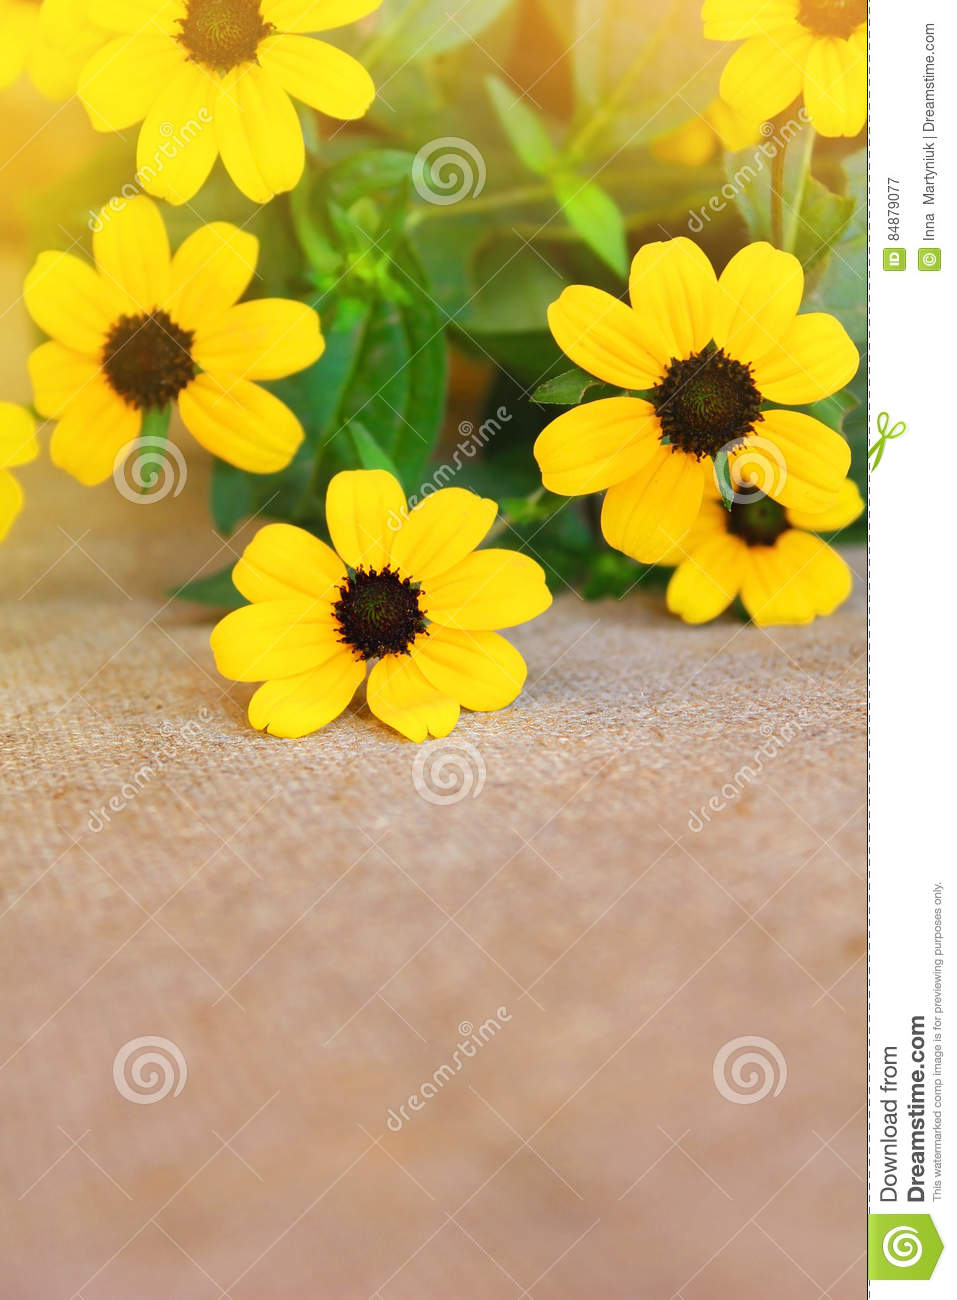 Pretty Yellow Flowers On Burlap Stock Image Image Of Flower Aging